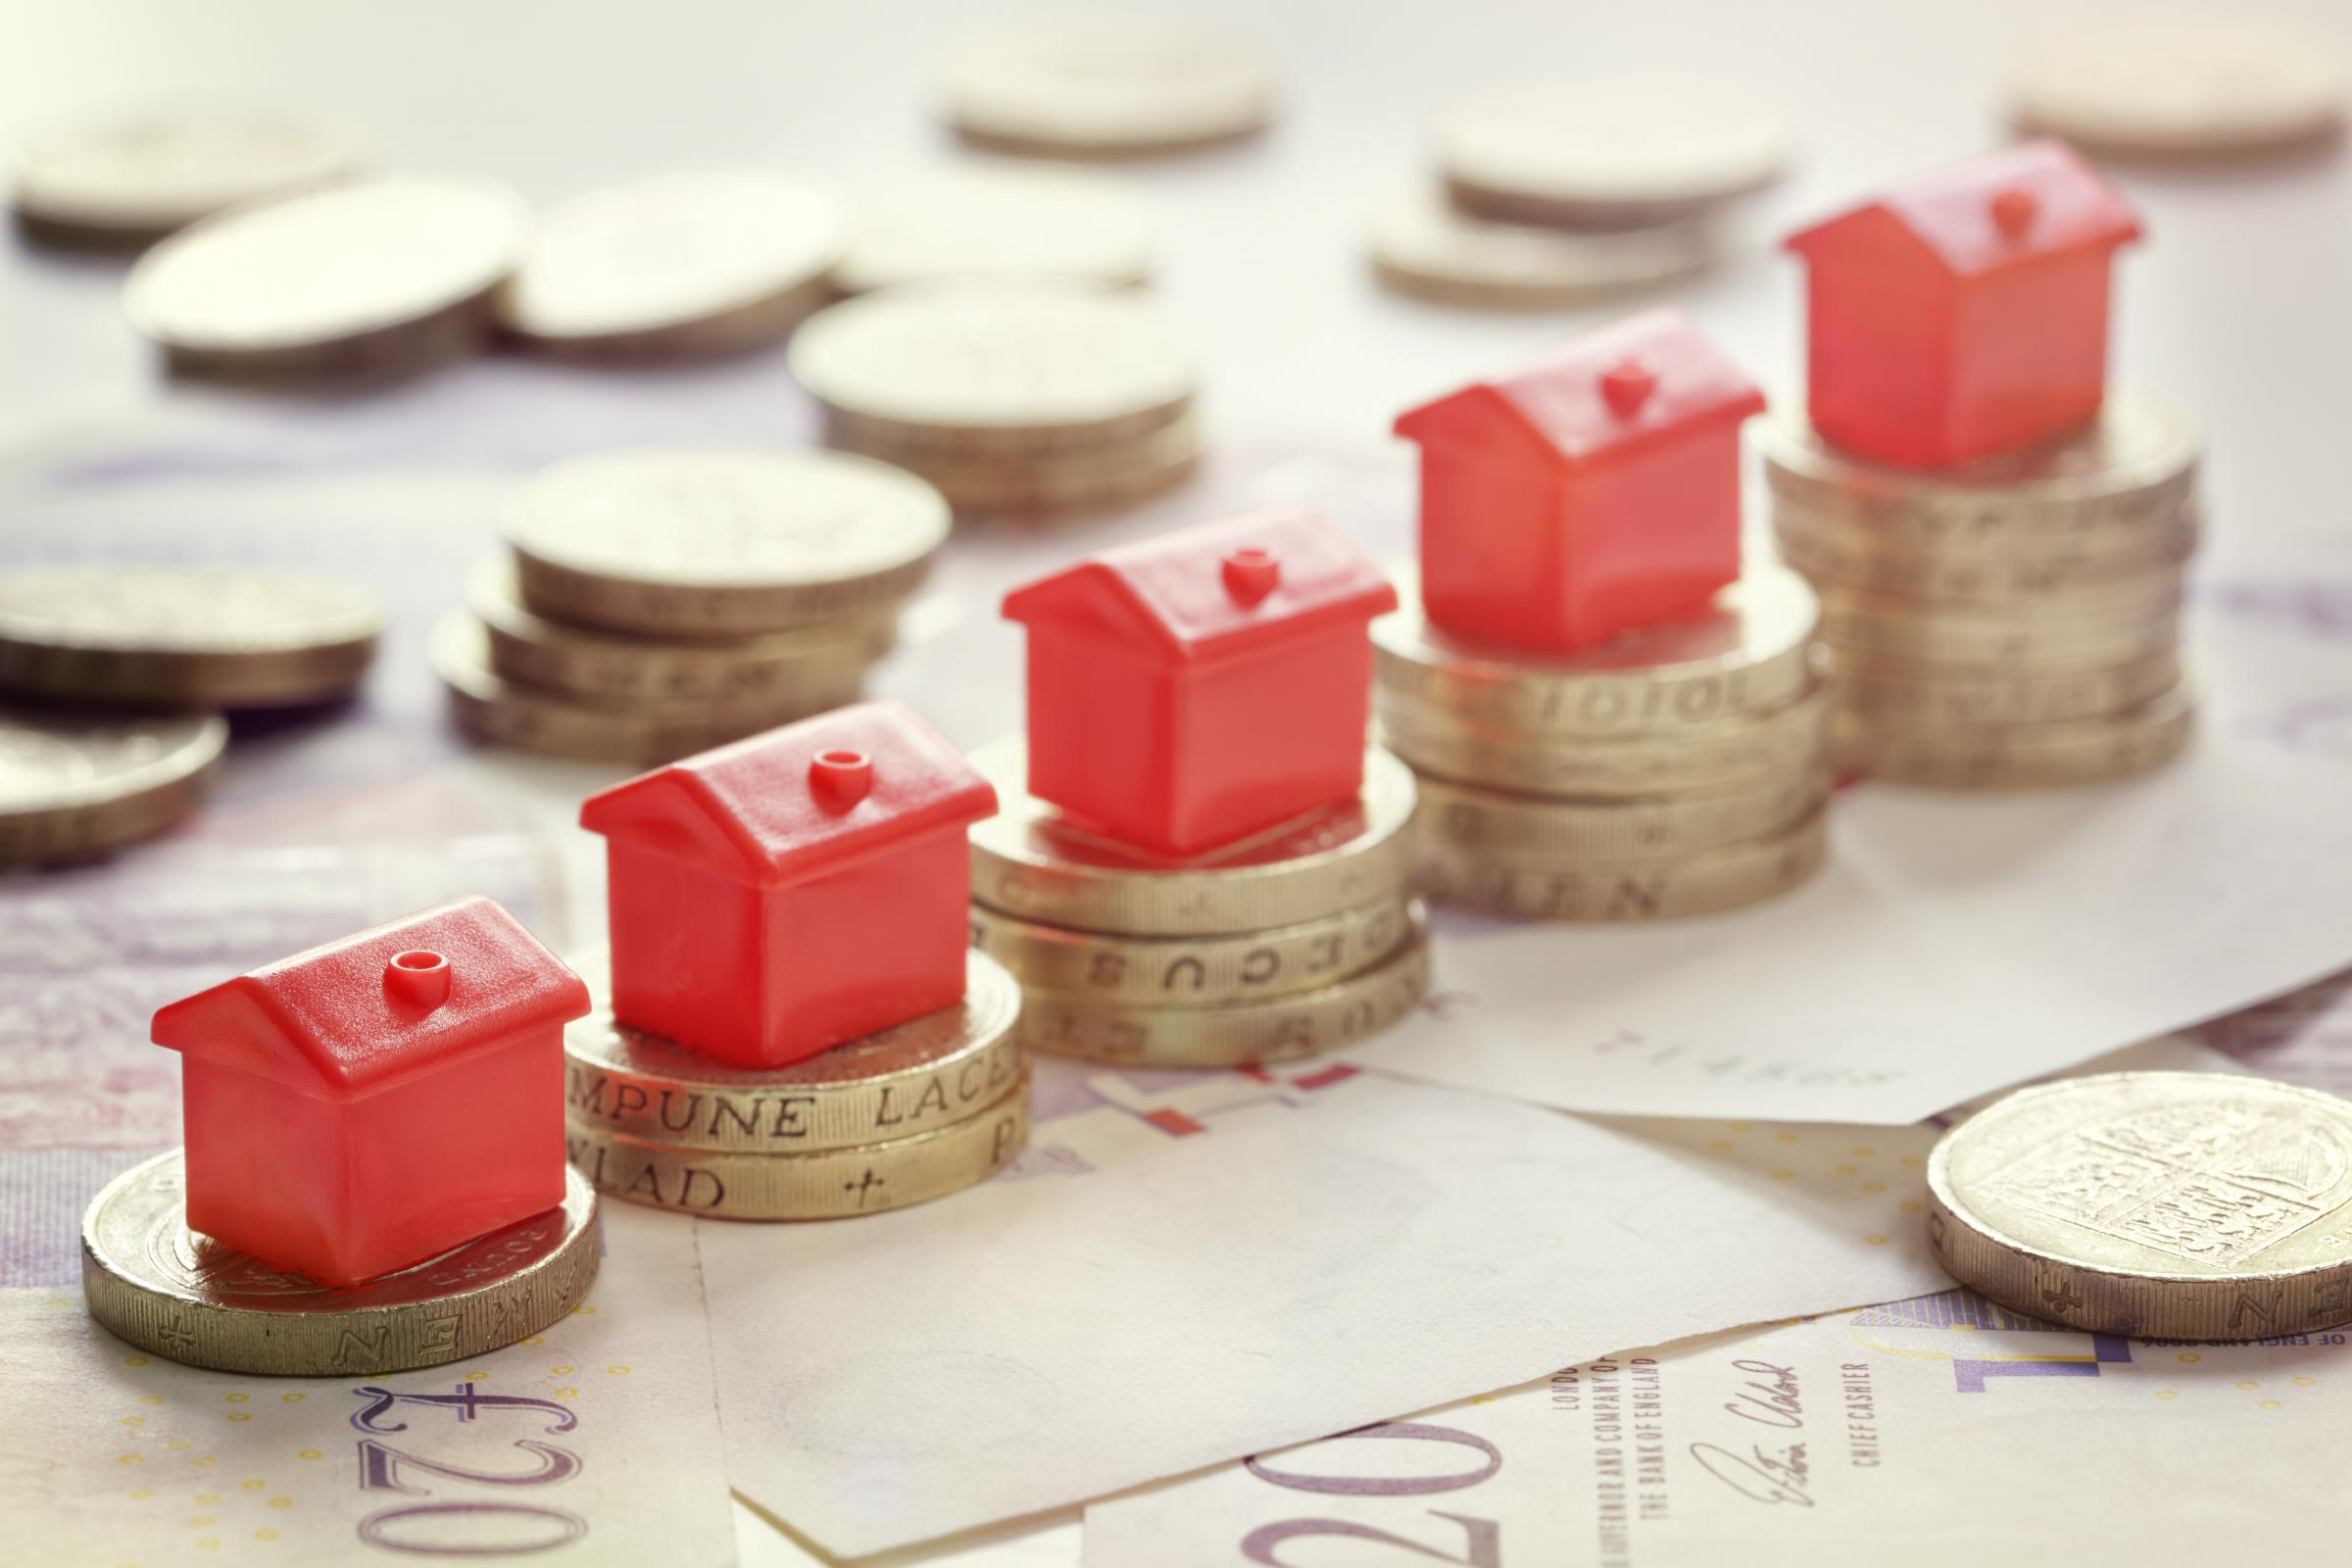 Property News: Paul Smith, CEO of haart estate agent, comment's on yesterday's Budget housing announcements